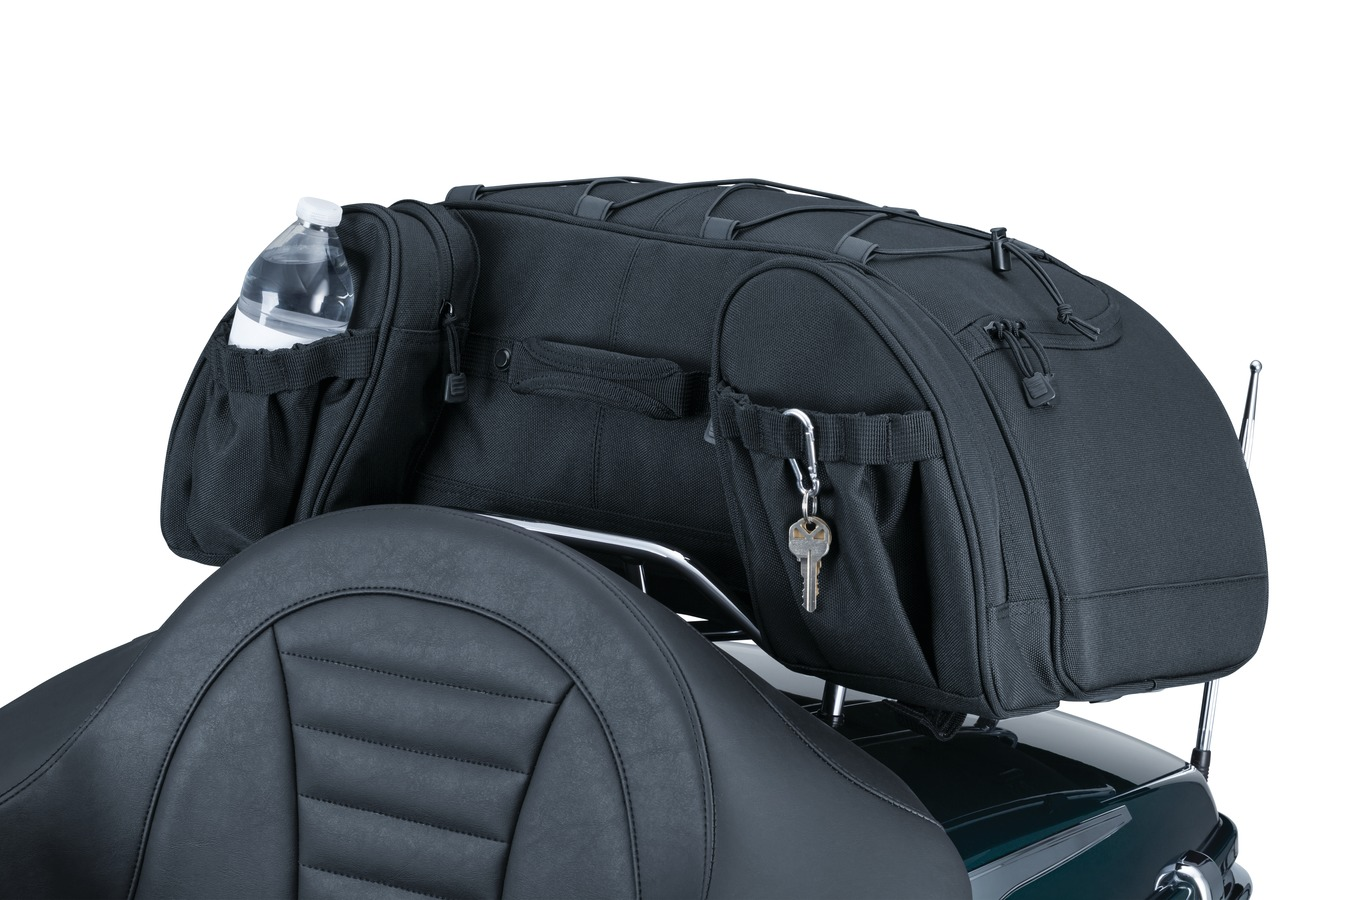 Momentum Hitchhiker Trunk Rack Bag: 5281